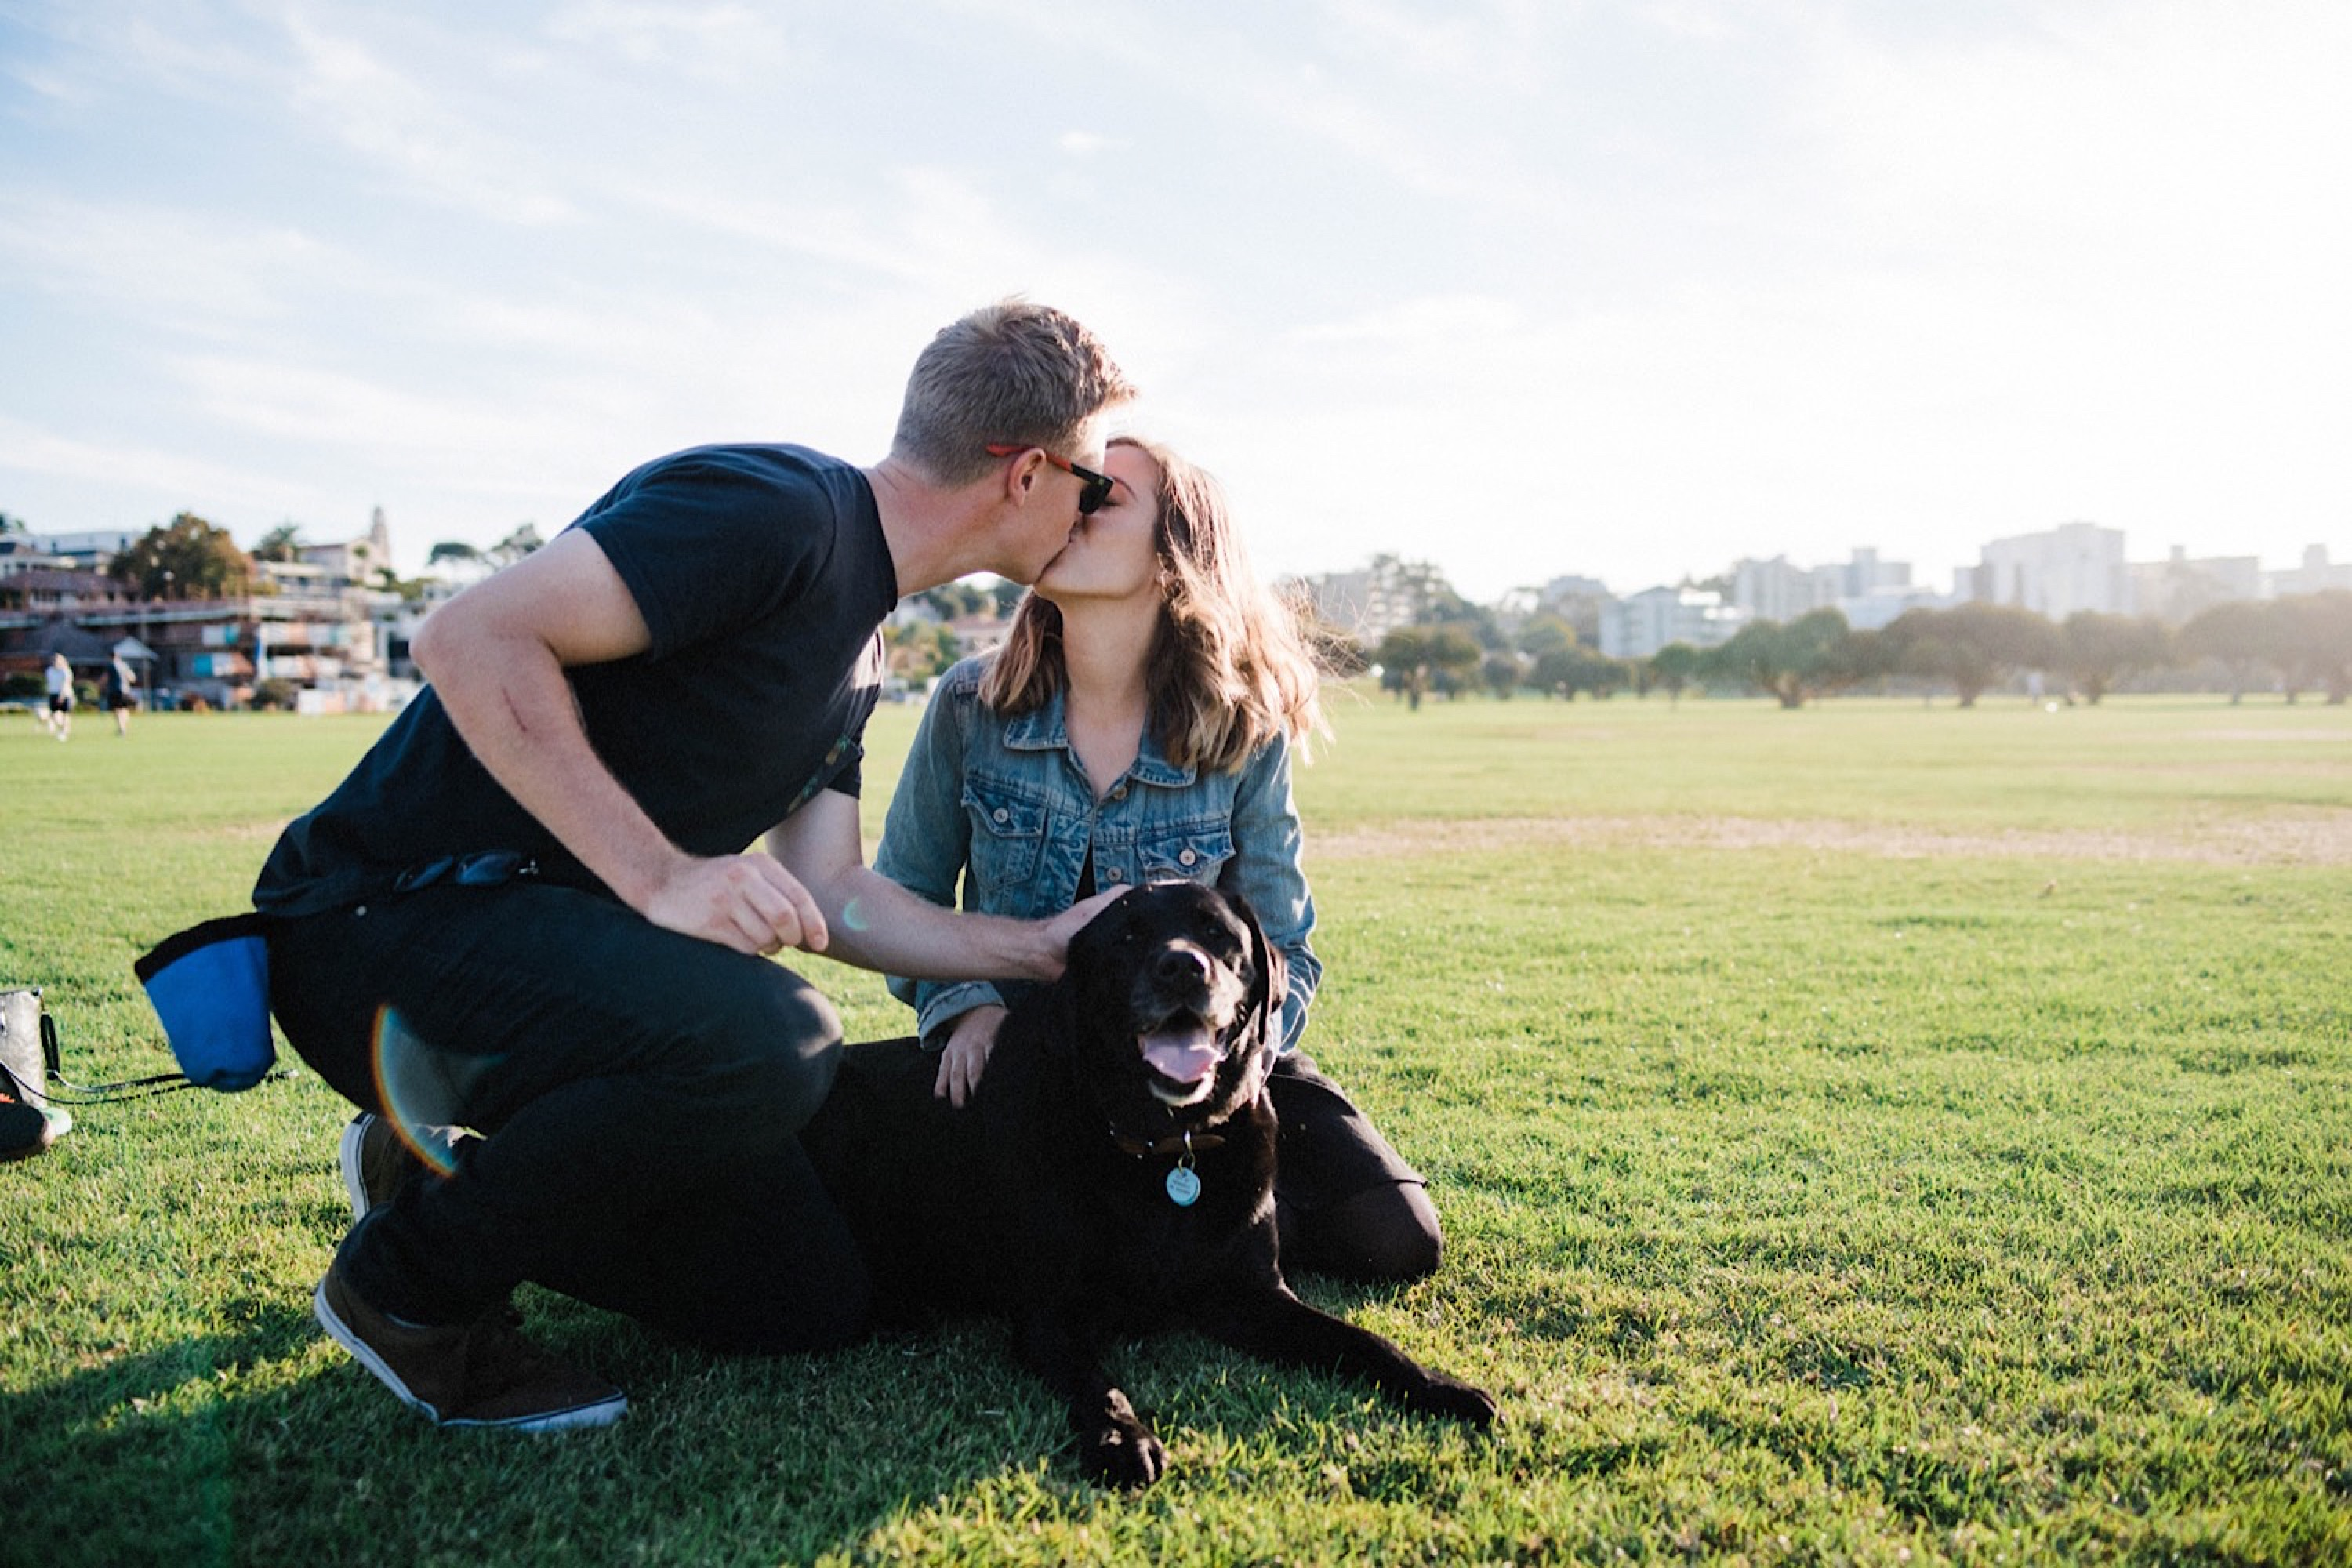 Photos of a couple with their dog, kneeling on the grass, at Sir James Mitchell Park, South Perth.